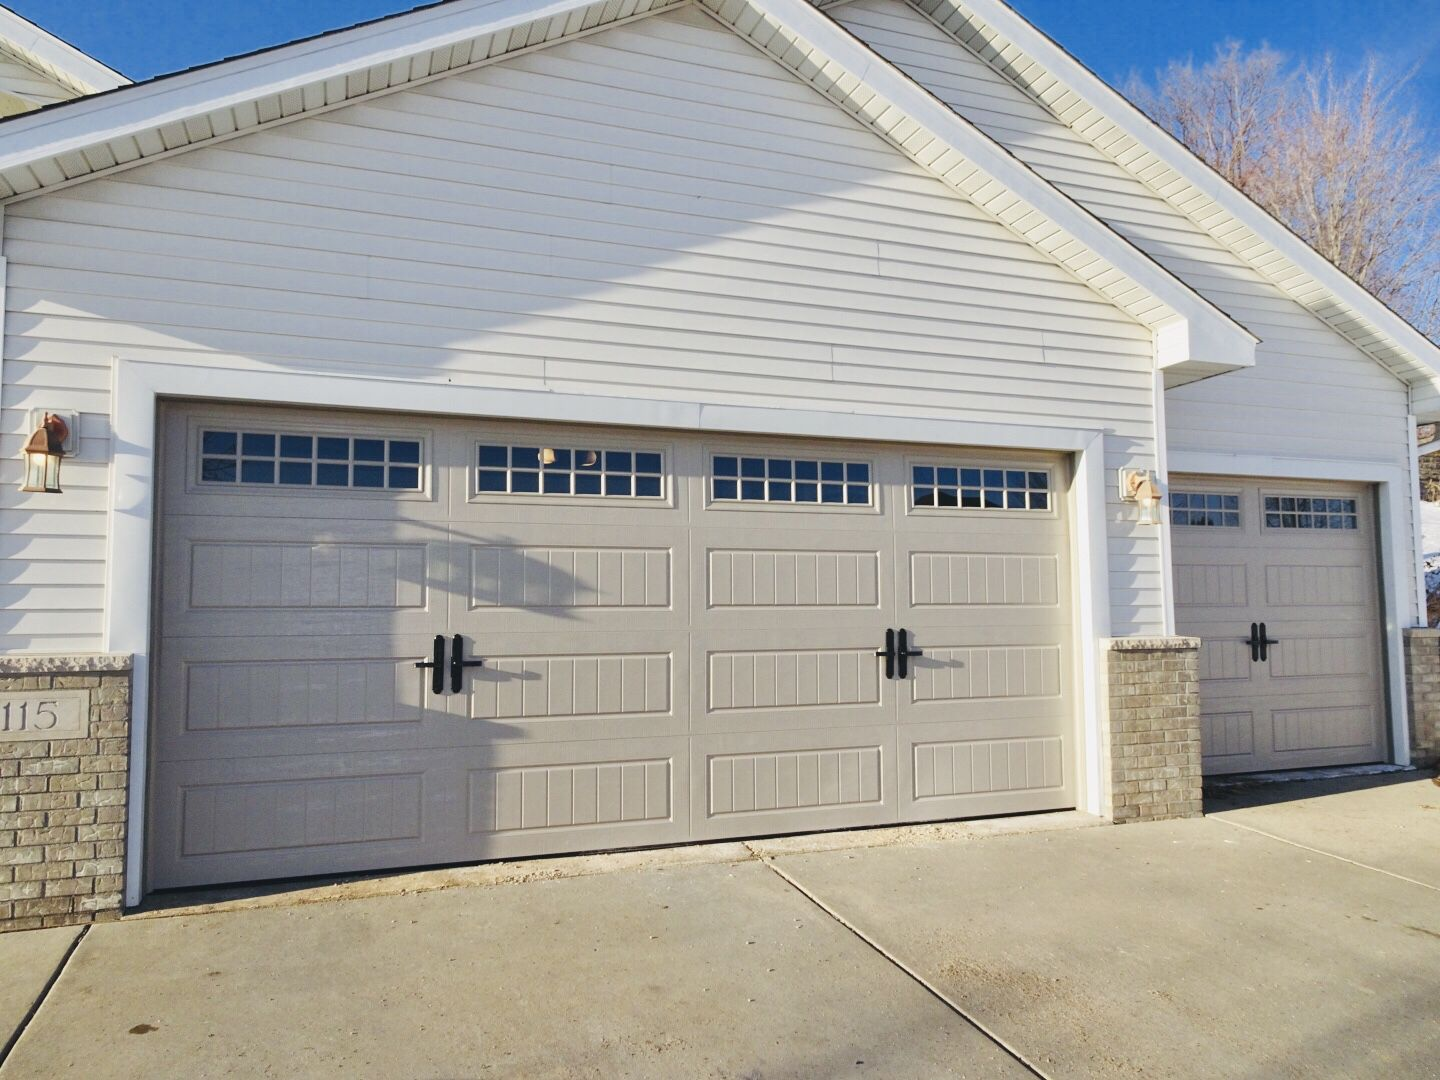 Amarr Hillcrest 3000 Garage Door In Sandtone Carriage House Doors Garage Door Styles Garage Door Types